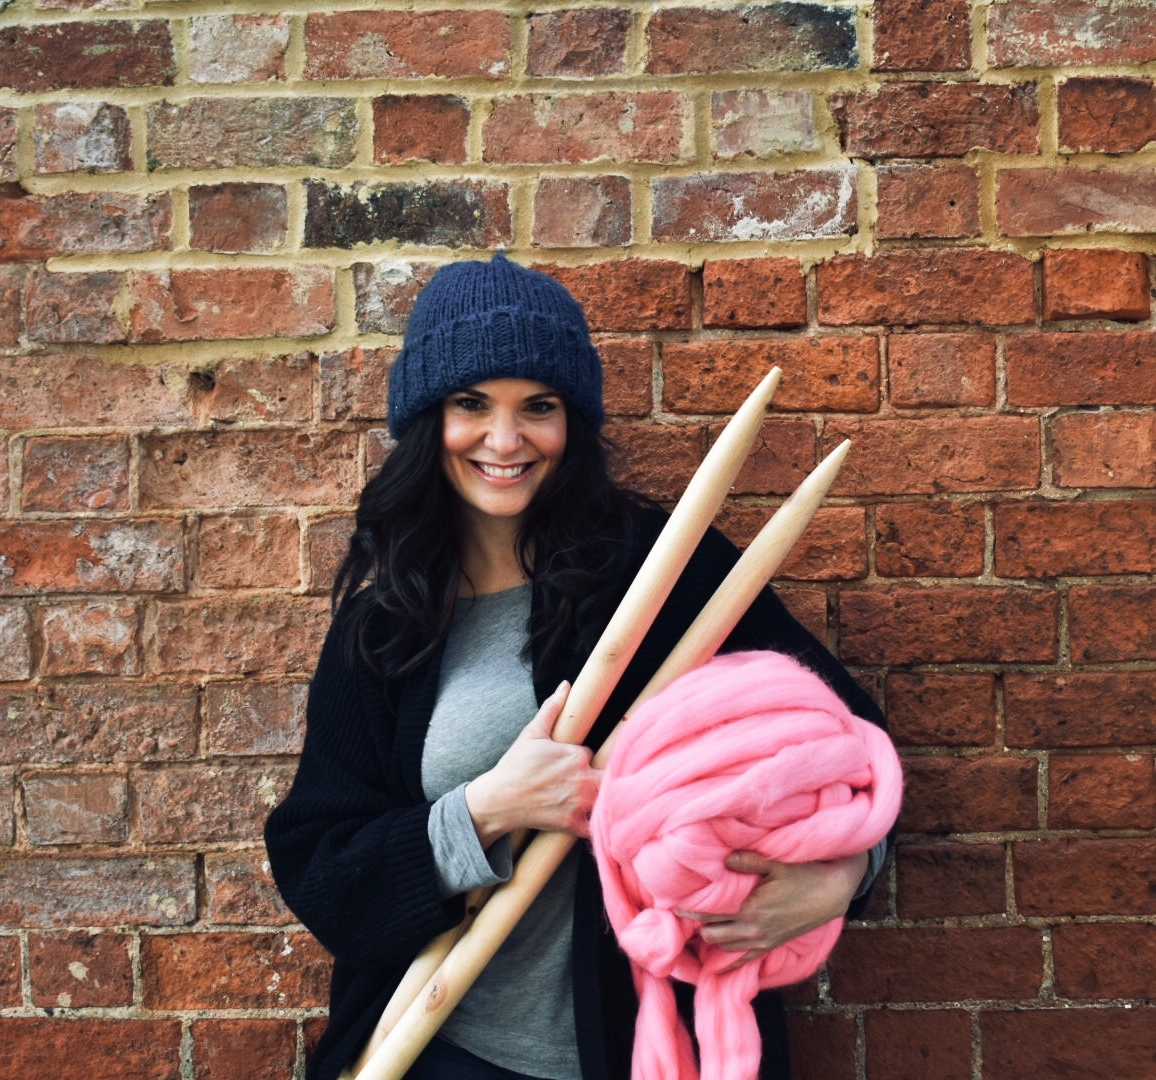 Bespoke By The Chunky Needle - Select your size, colour and stitch and The Chunky Needle will produce your custom made Chunky blanket, cushion or fashion accessory. Choose from over 40 vibrant hues, 5 unique stitches and 5 size options, design a custom chunky knit product and The Chunky Needle will do the rest!